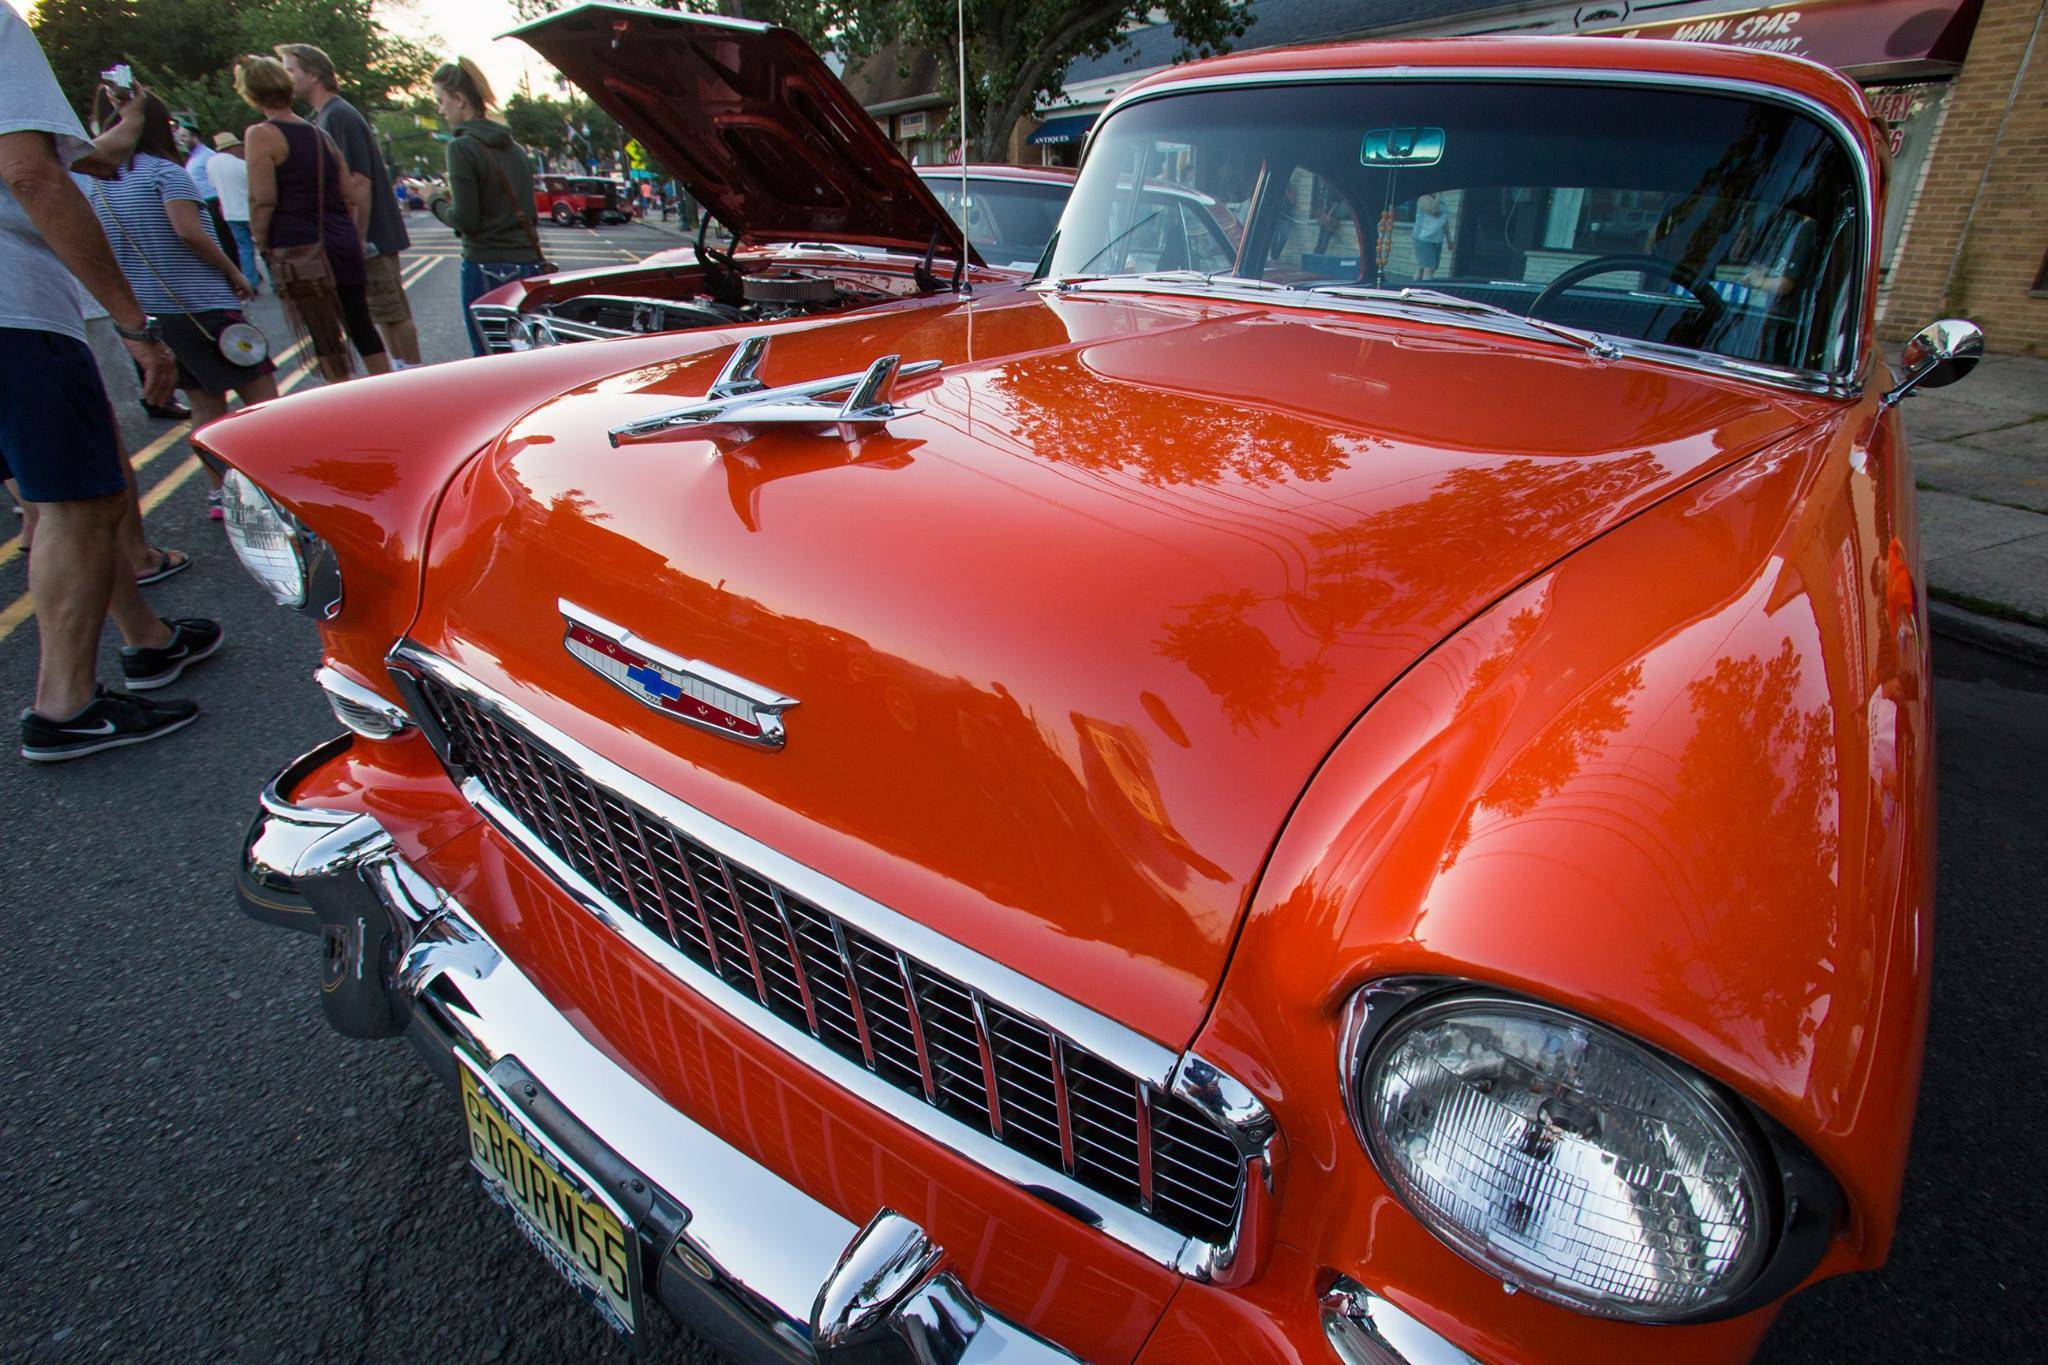 Scenes From The Scotch Plains Cruising On Park Avenue Car Show